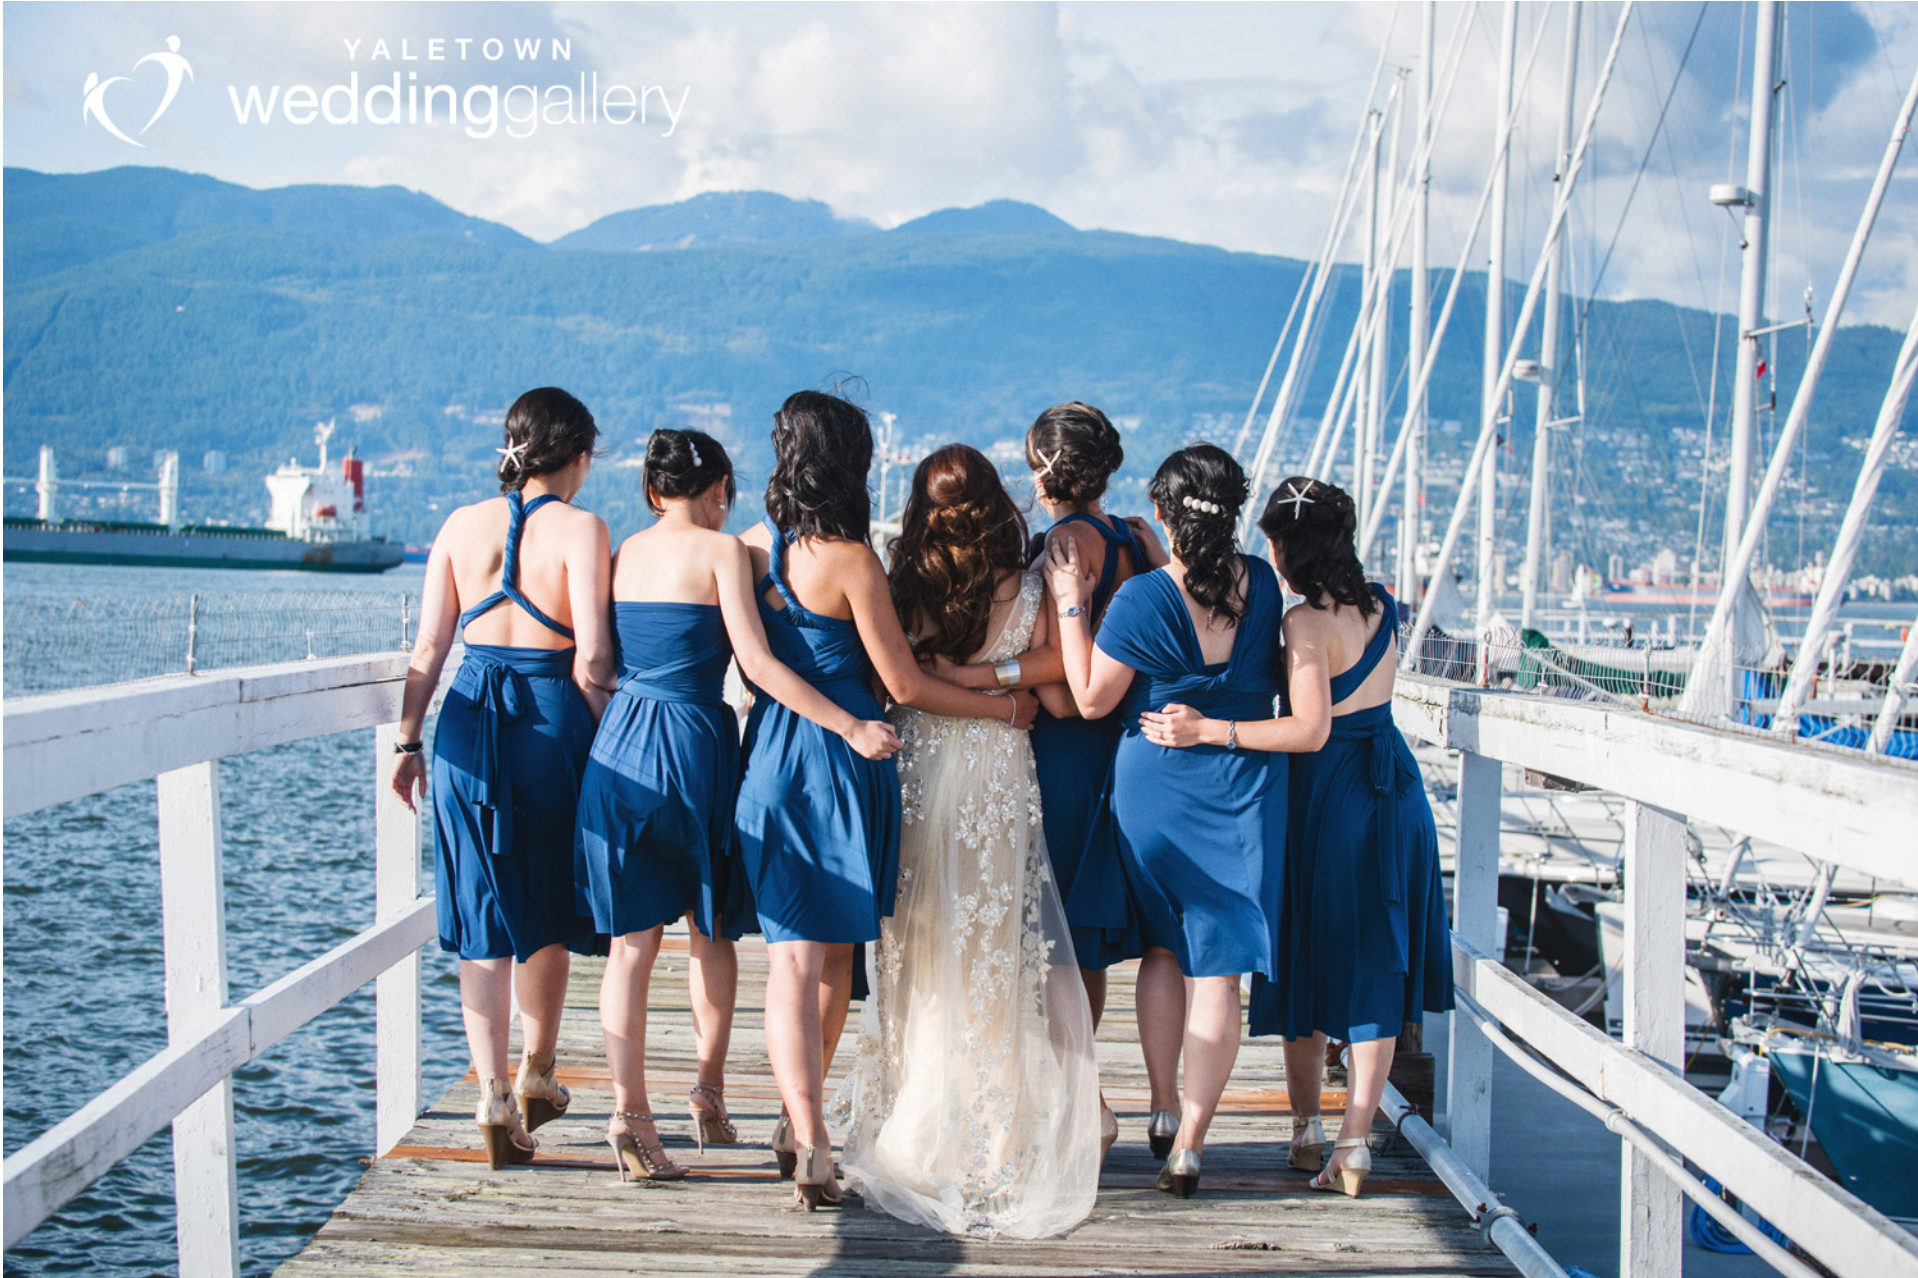 Vancouver-yacht-club-wedding-yaletown-wedding-gallery-vancouver-wedding-photographers-vancouver-wedding-photo